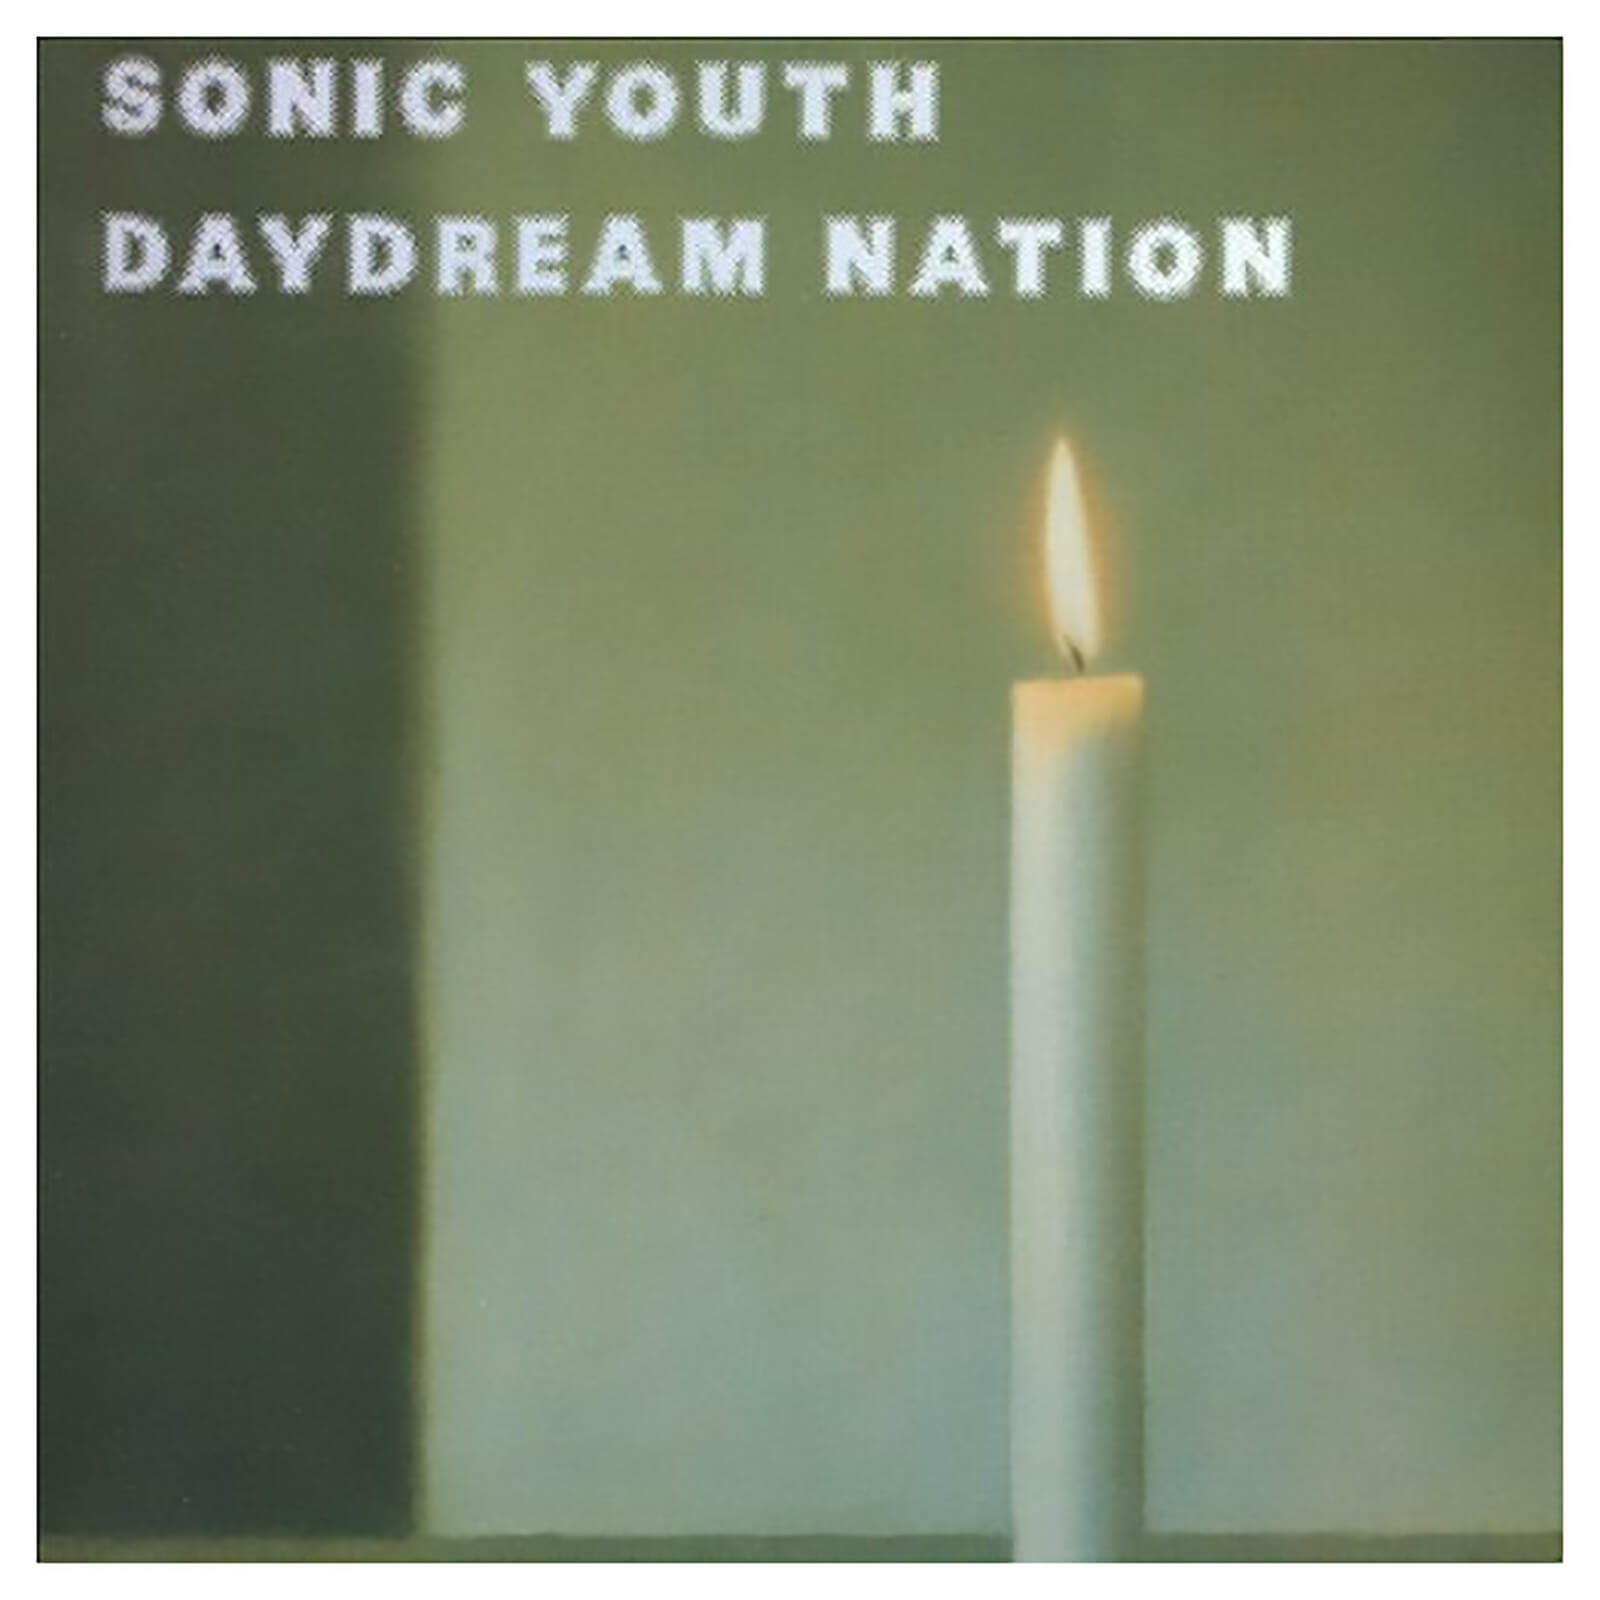 Sonic Youth - Daydream Nation - Vinyl